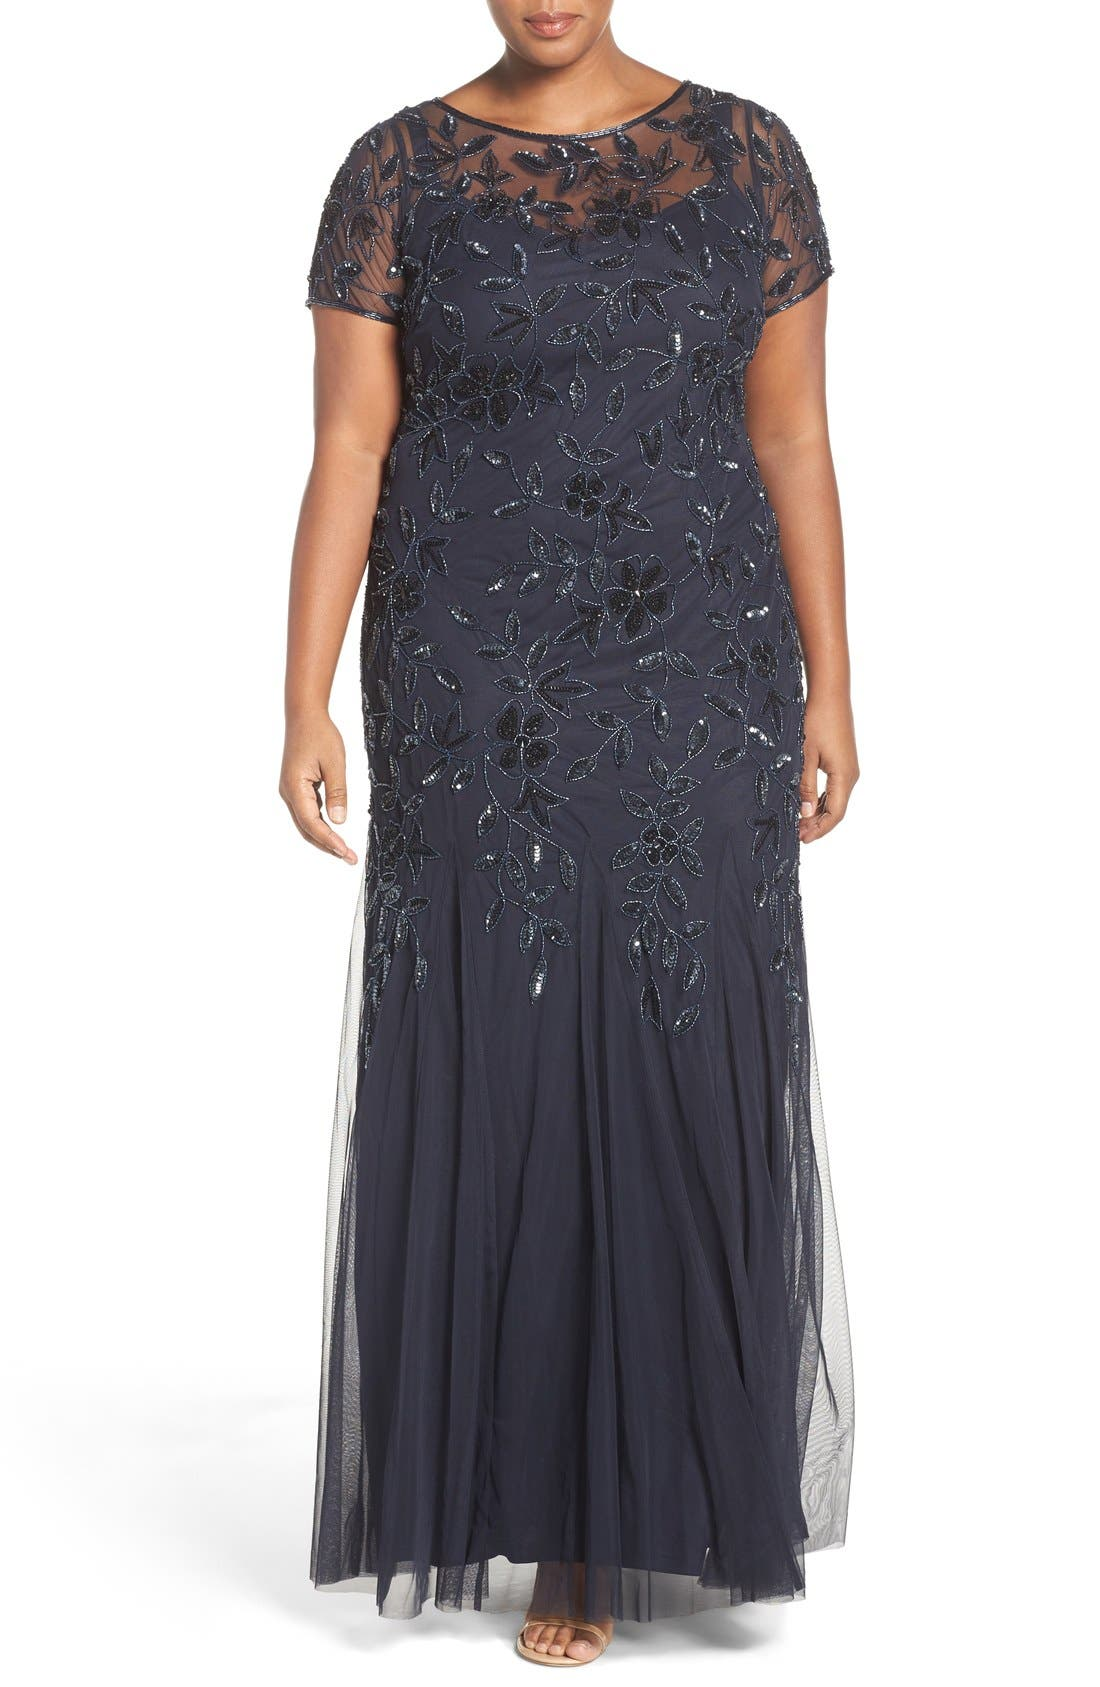 Alternate Image 1 Selected - Adrianna Papell Floral Beaded Godet Gown (Plus Size)